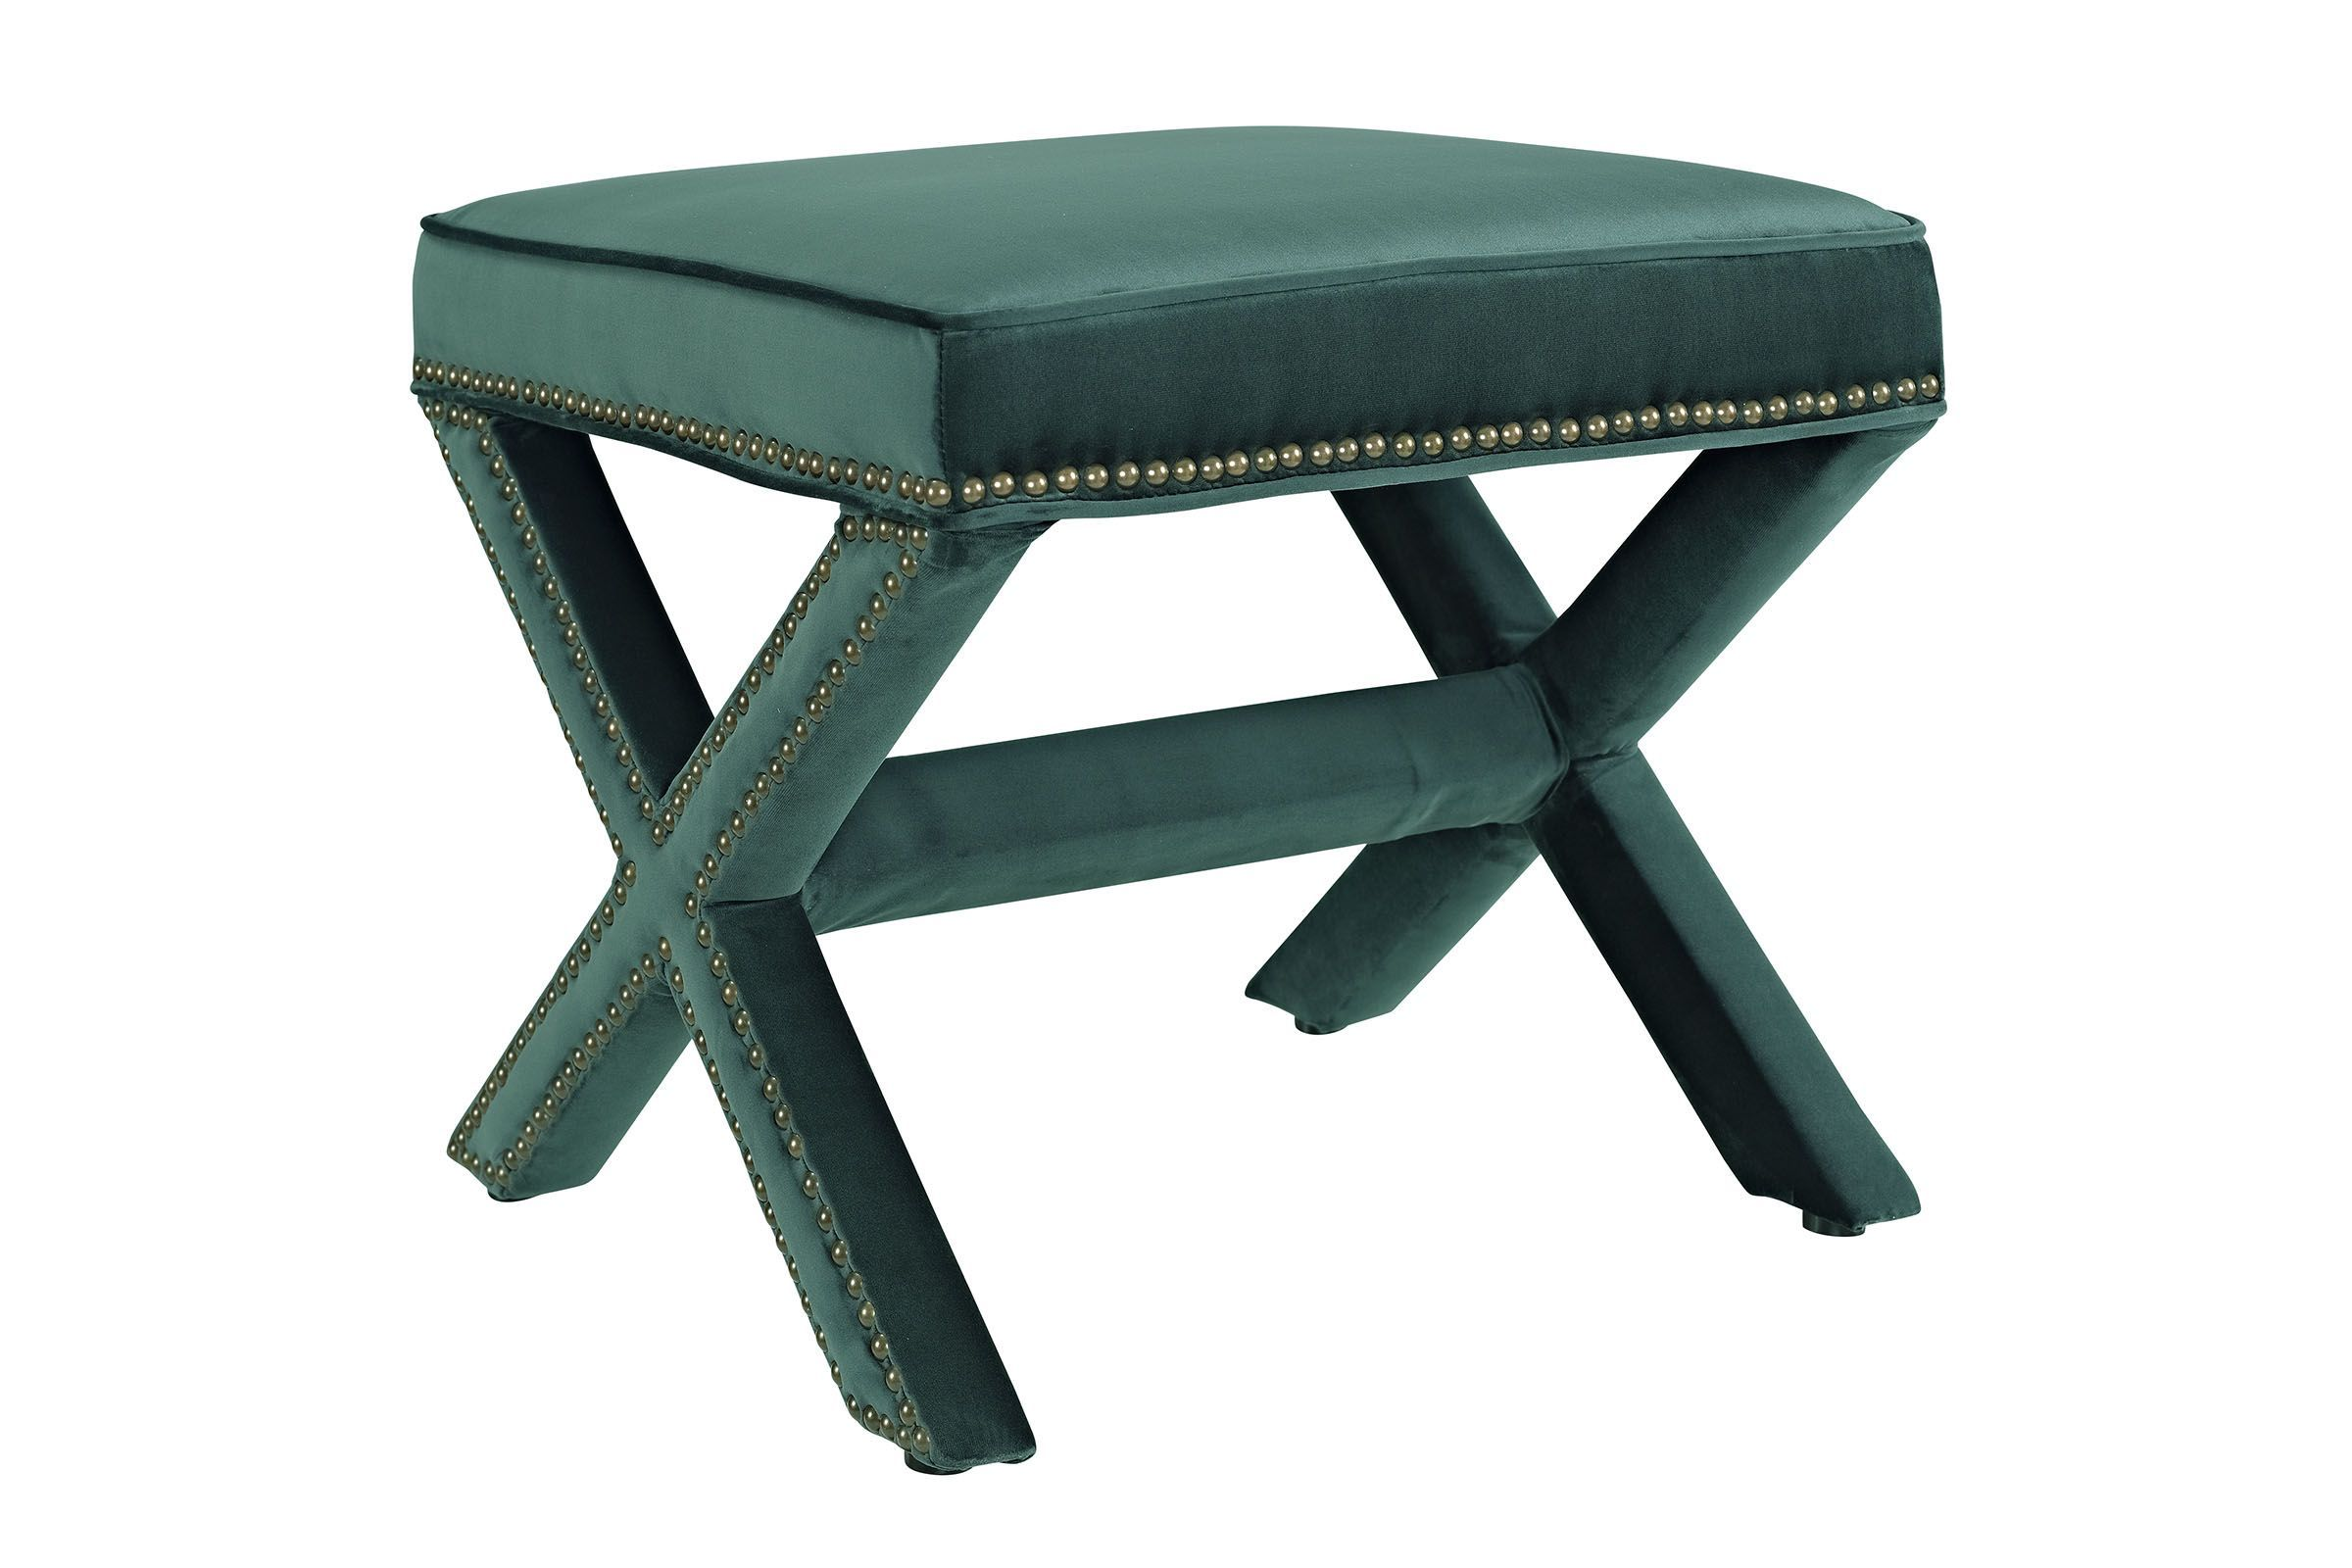 Stupendous Rivet Bench In Green By Modway In 2019 Products Creativecarmelina Interior Chair Design Creativecarmelinacom